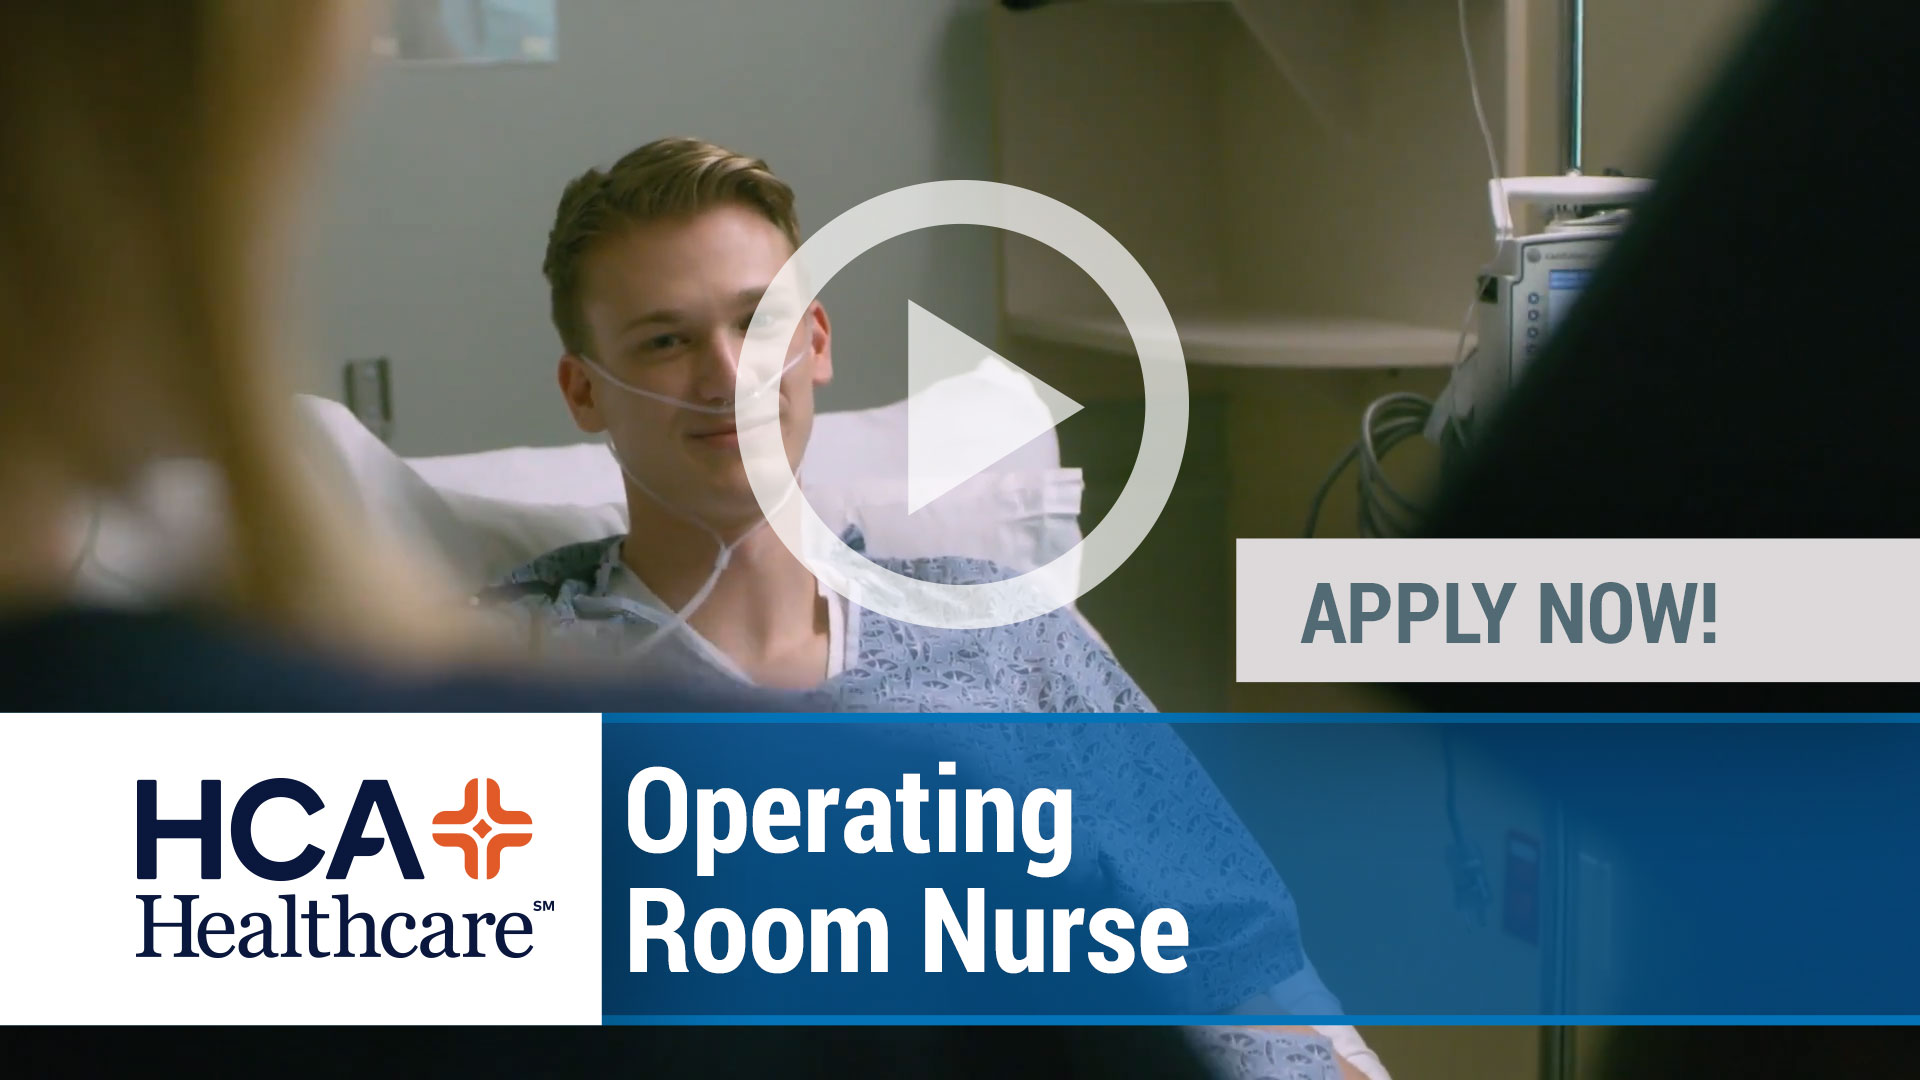 Watch our careers video for available job opening Operating Room Nurse in Cypress, Texas